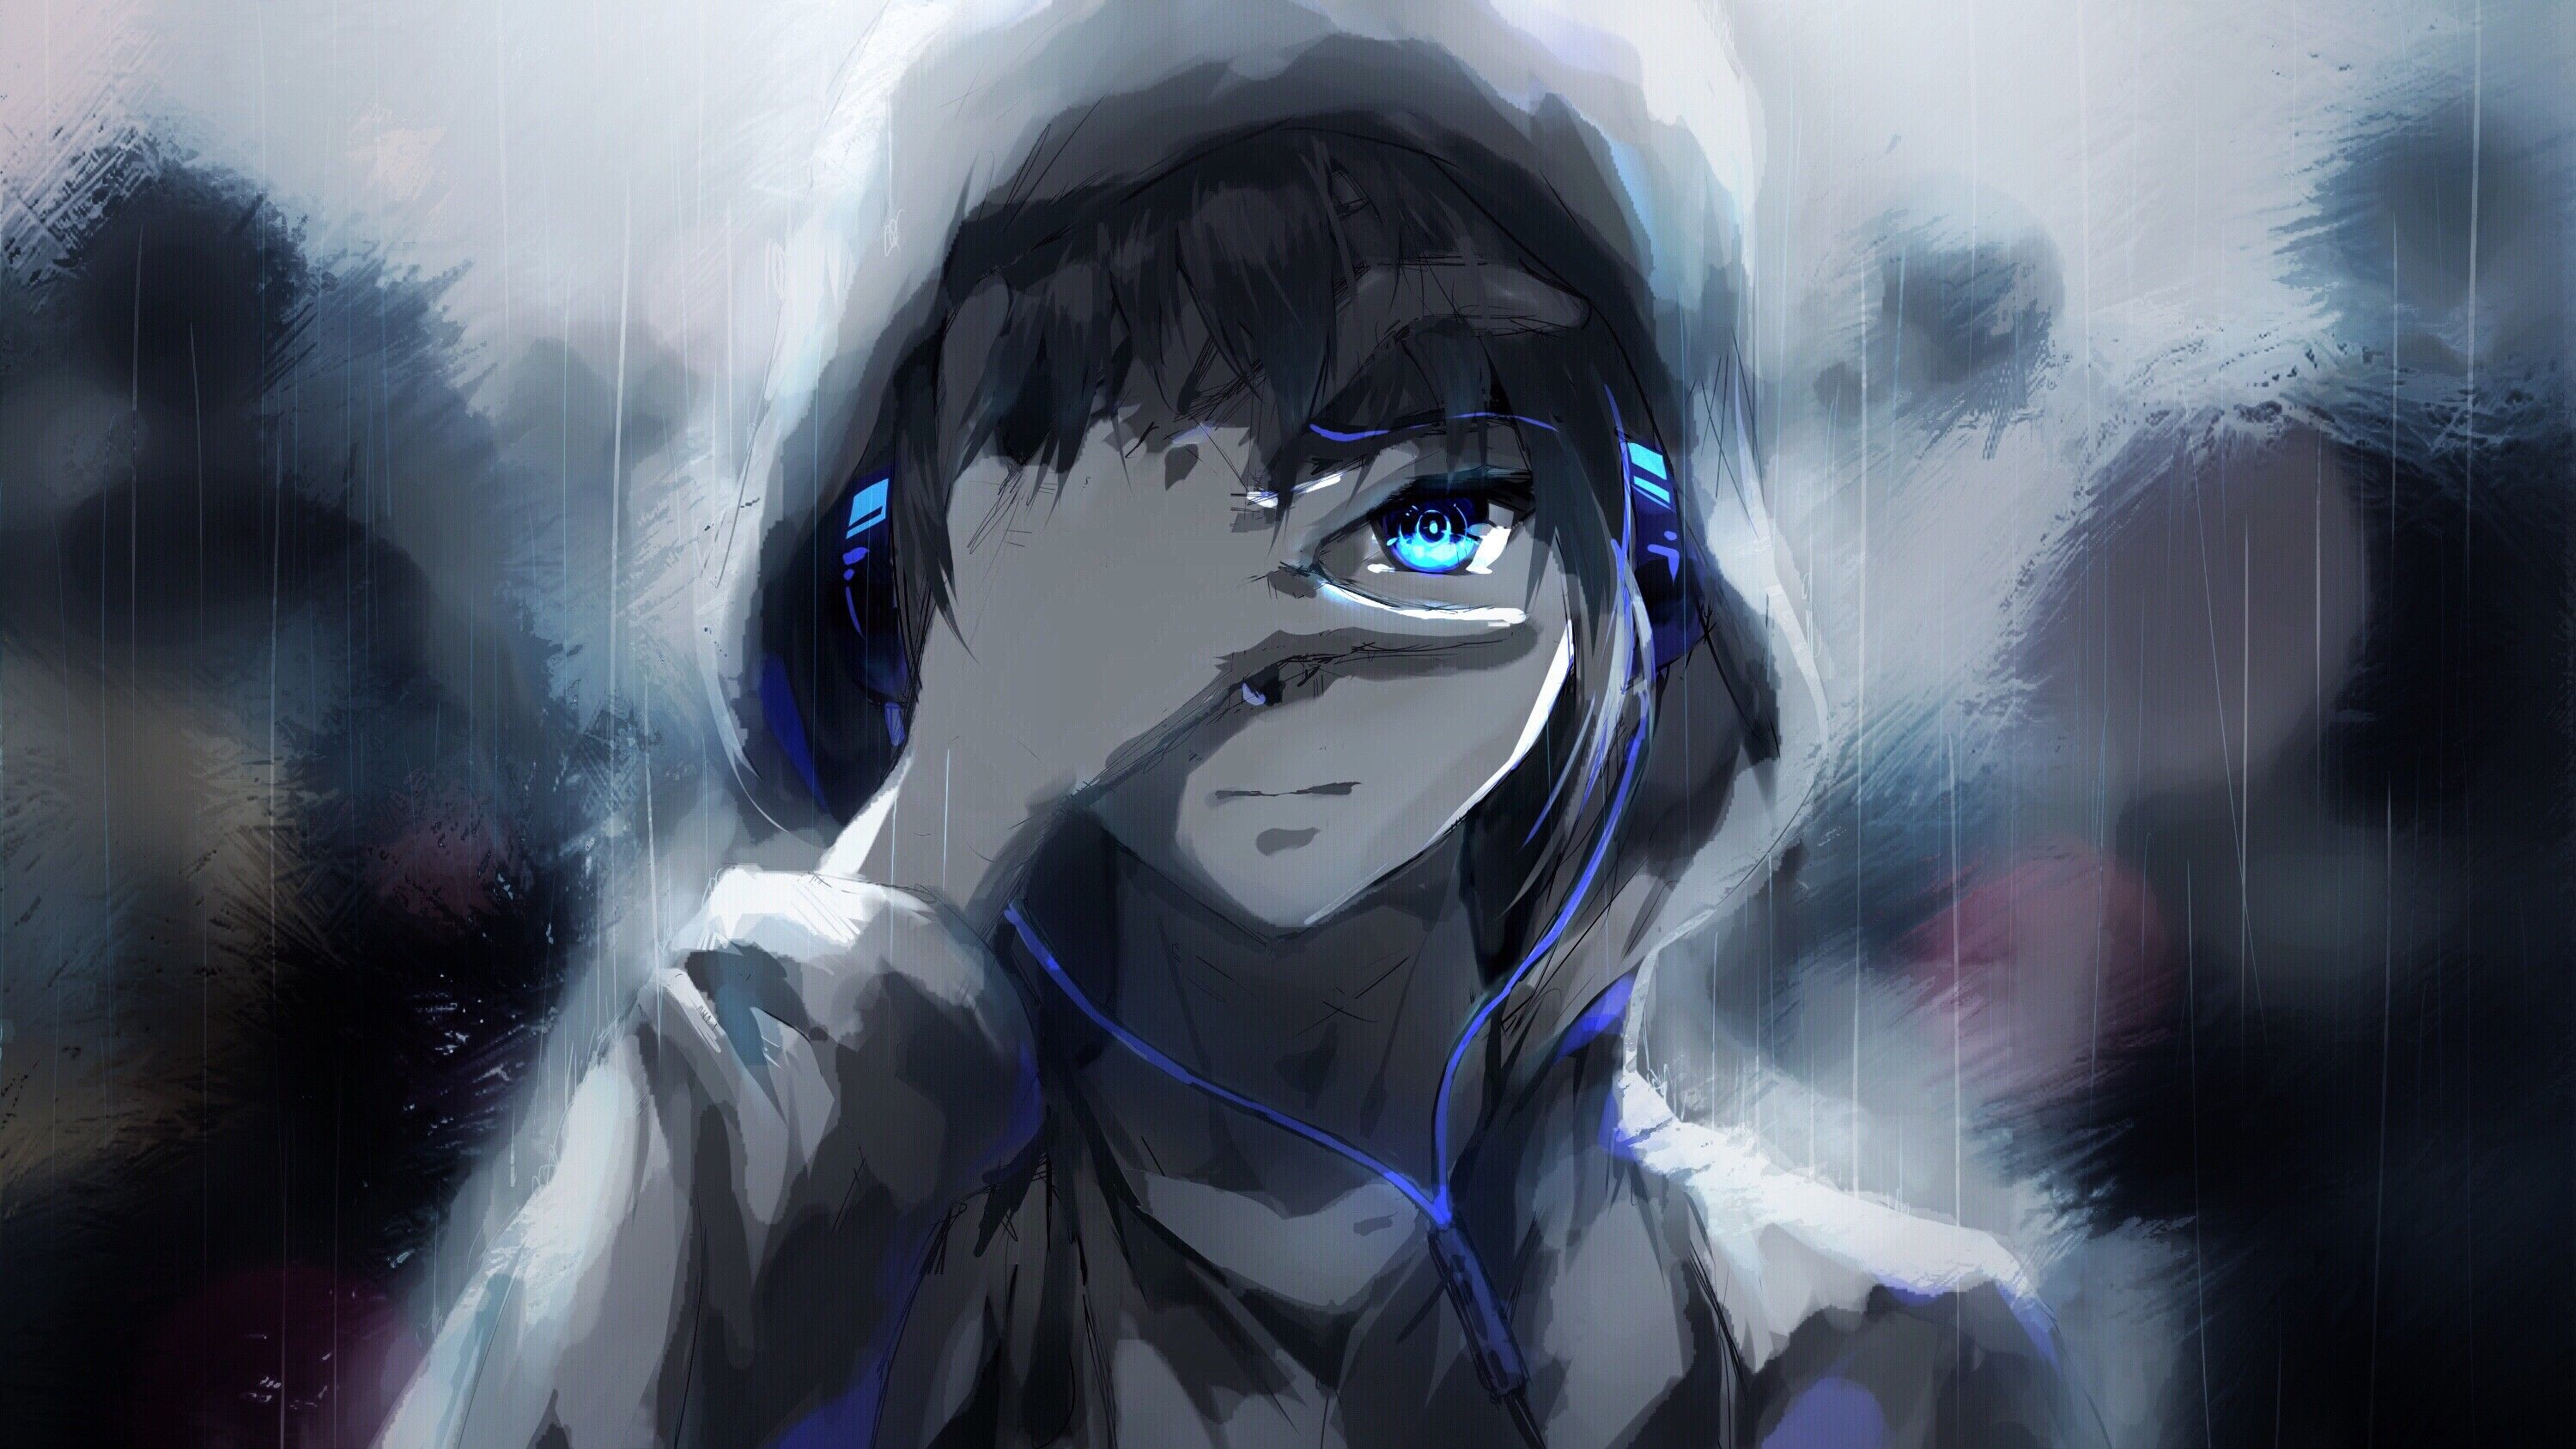 Anime Wallpaper X Manga Anime Boys Artwork Fantasy Art Music Headphones